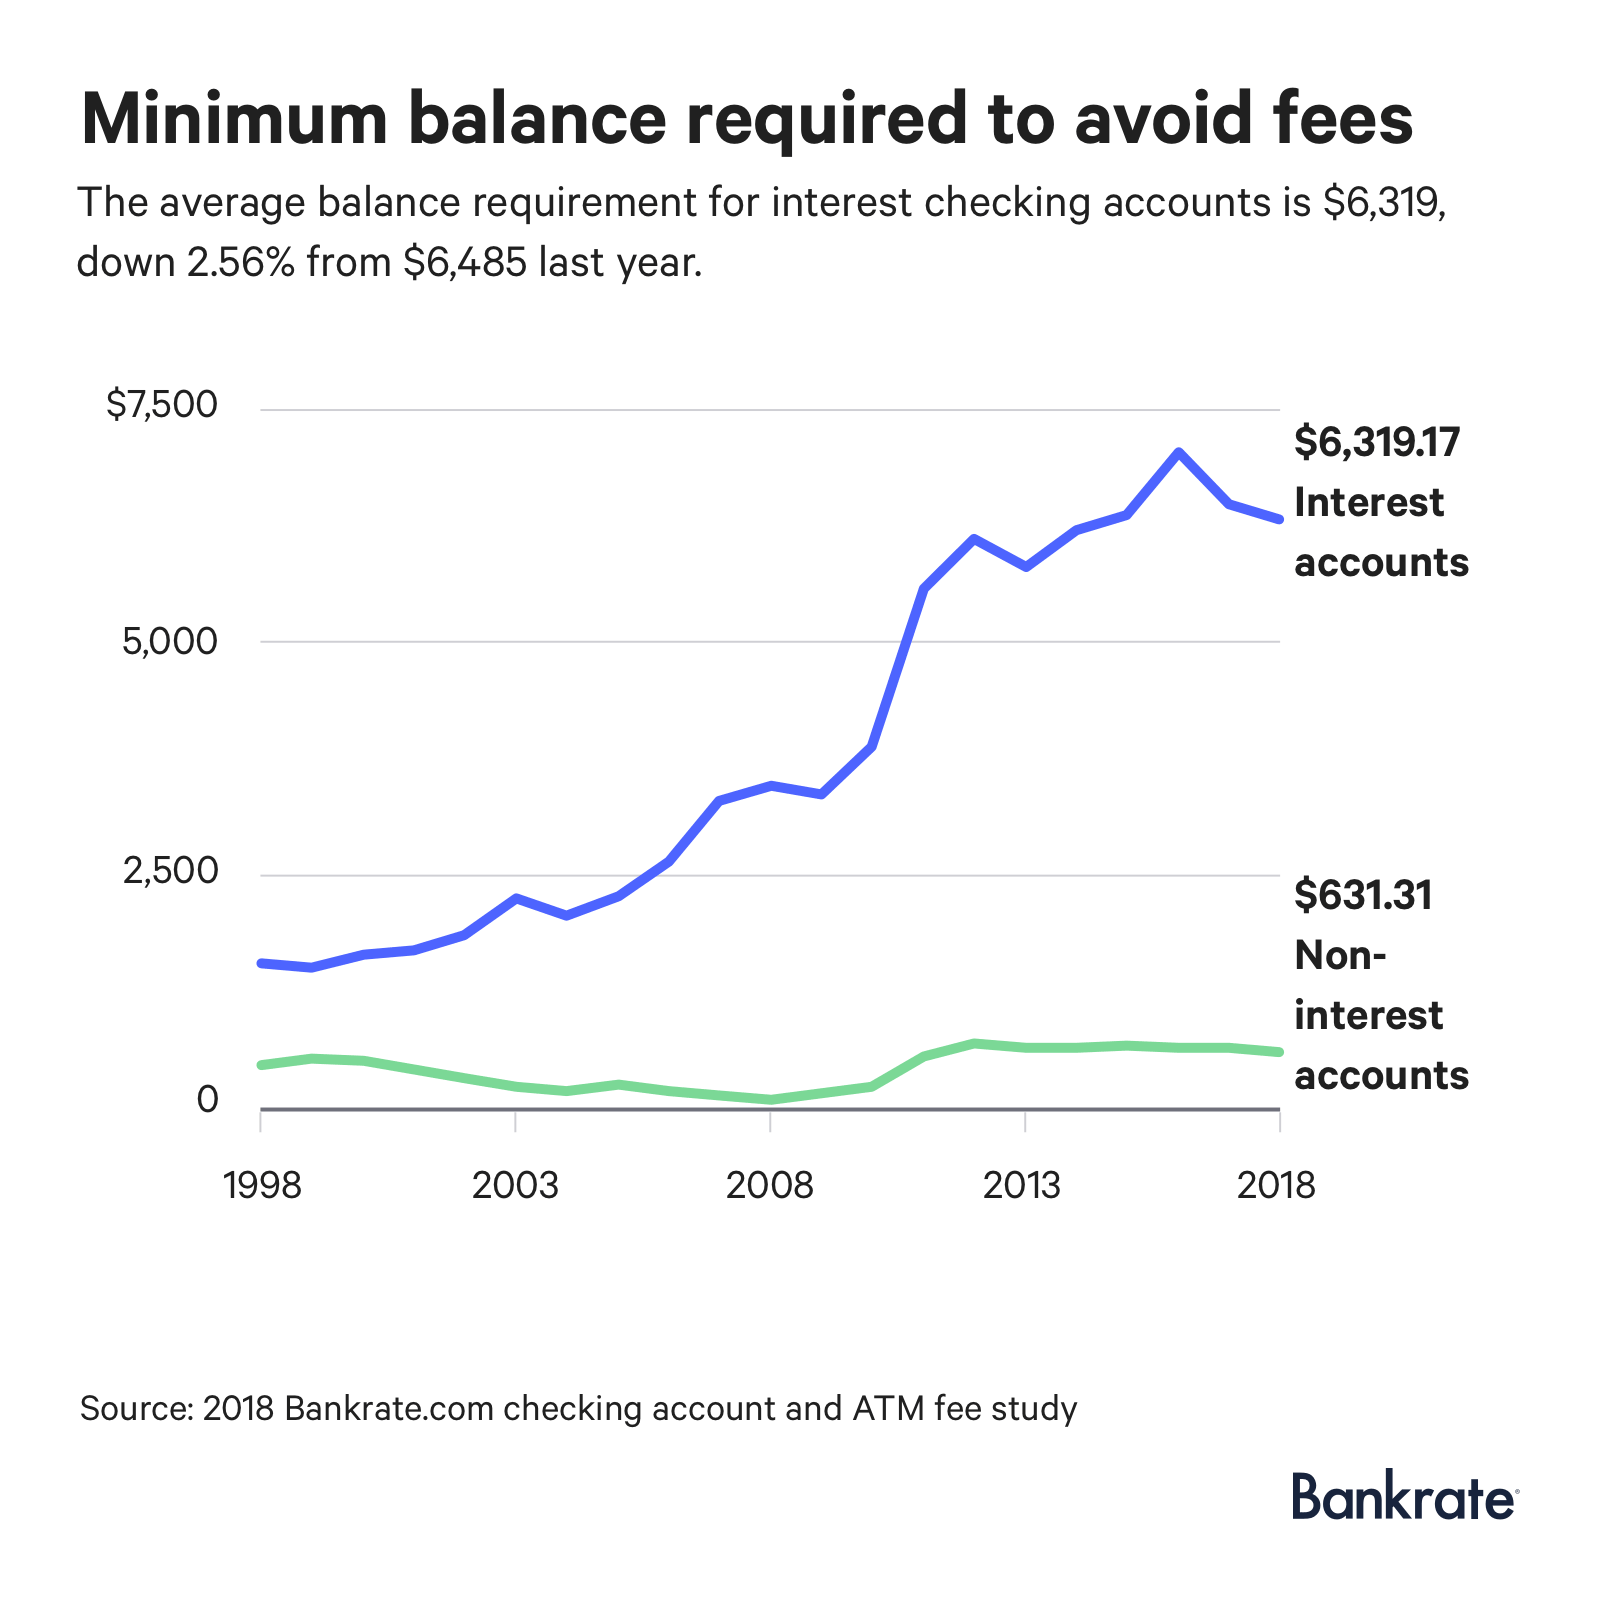 Graph: The average balance requirement for interest checking accounts to avoid fees is $6,319.